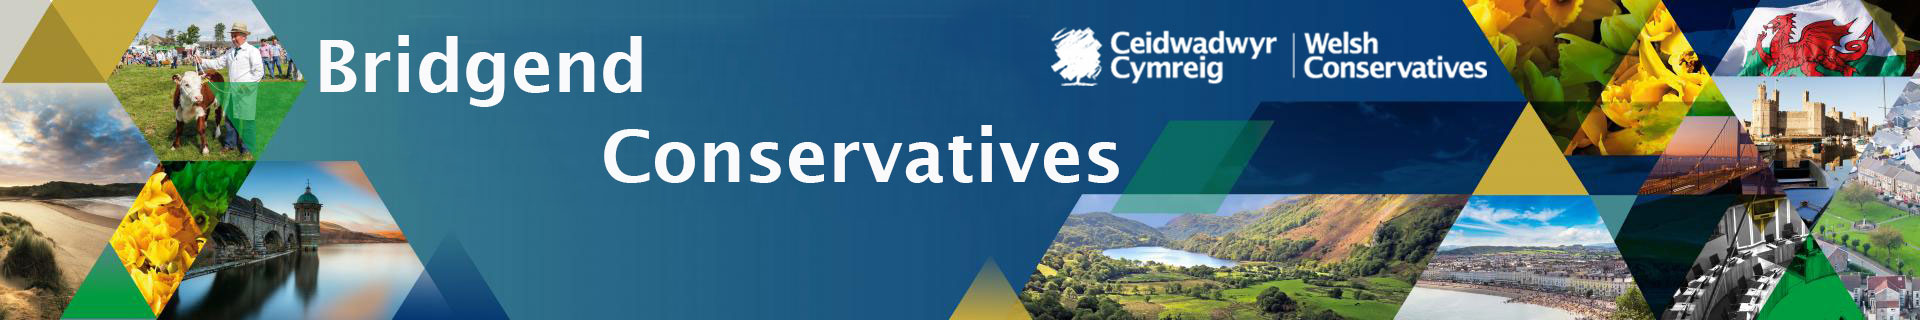 Bridgend Conservatives